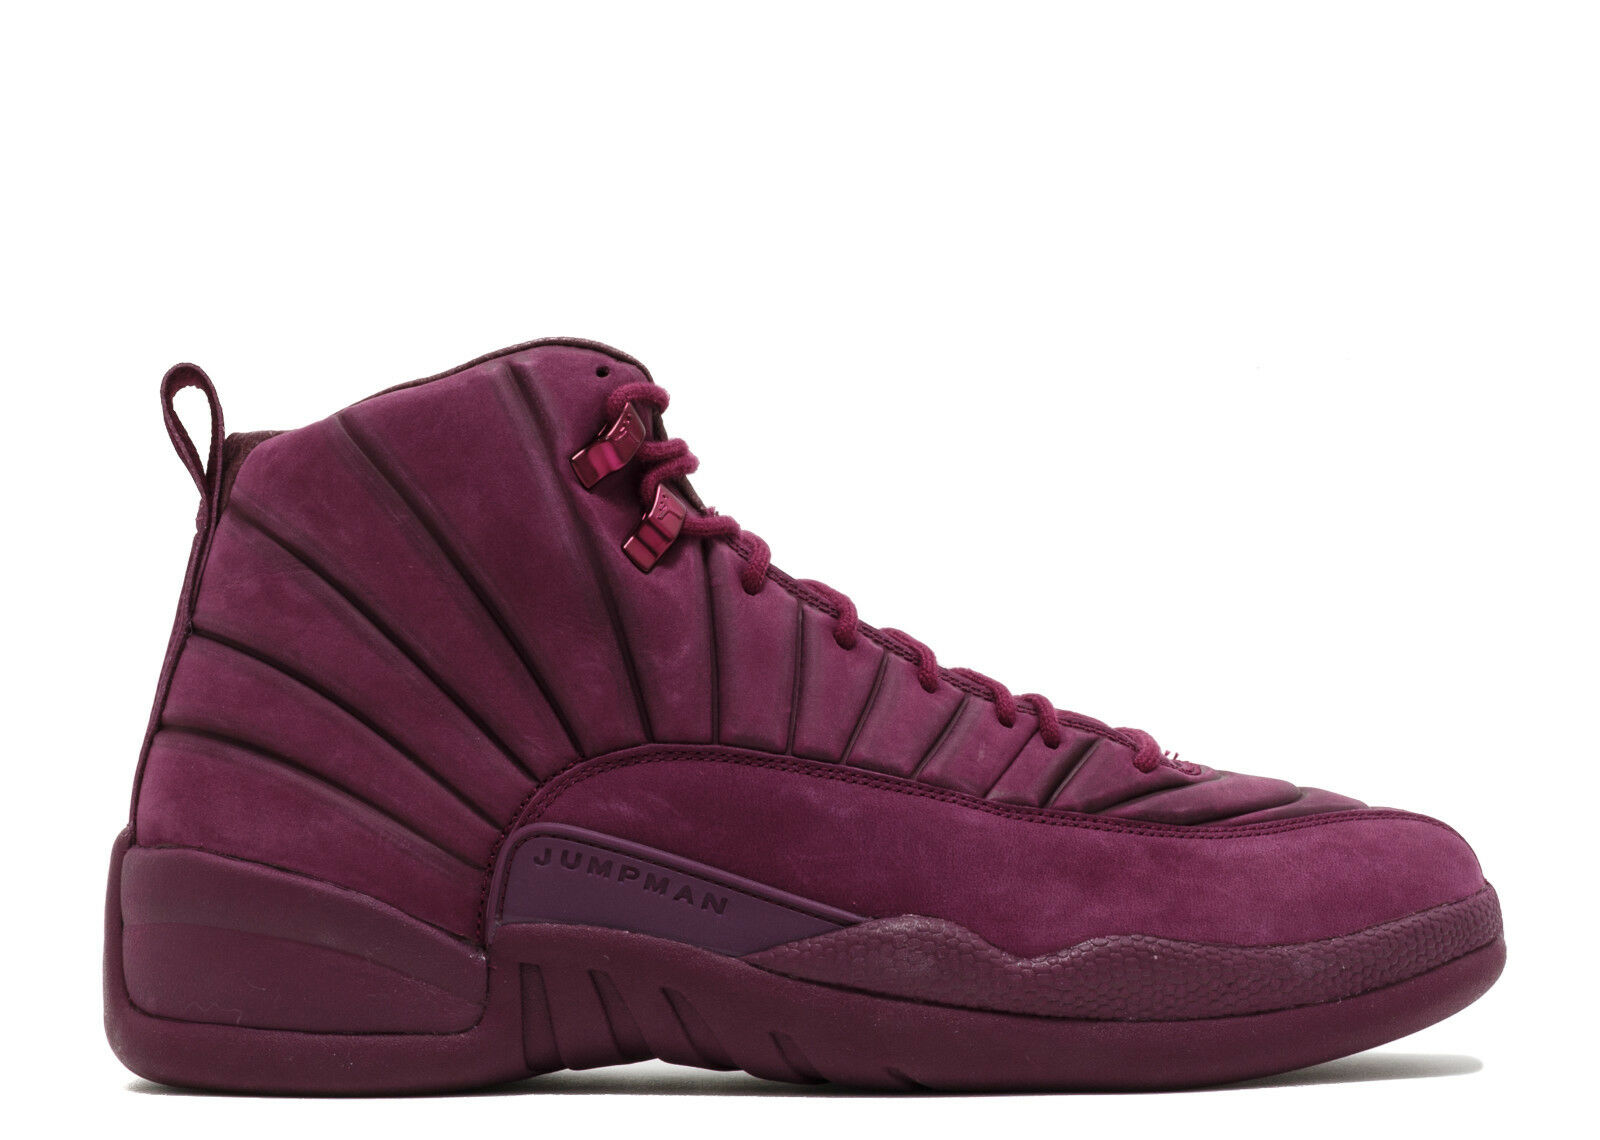 Nike Air Jordan 12 Retro PSNY Bordeaux Paris Size 9. AA1233-600